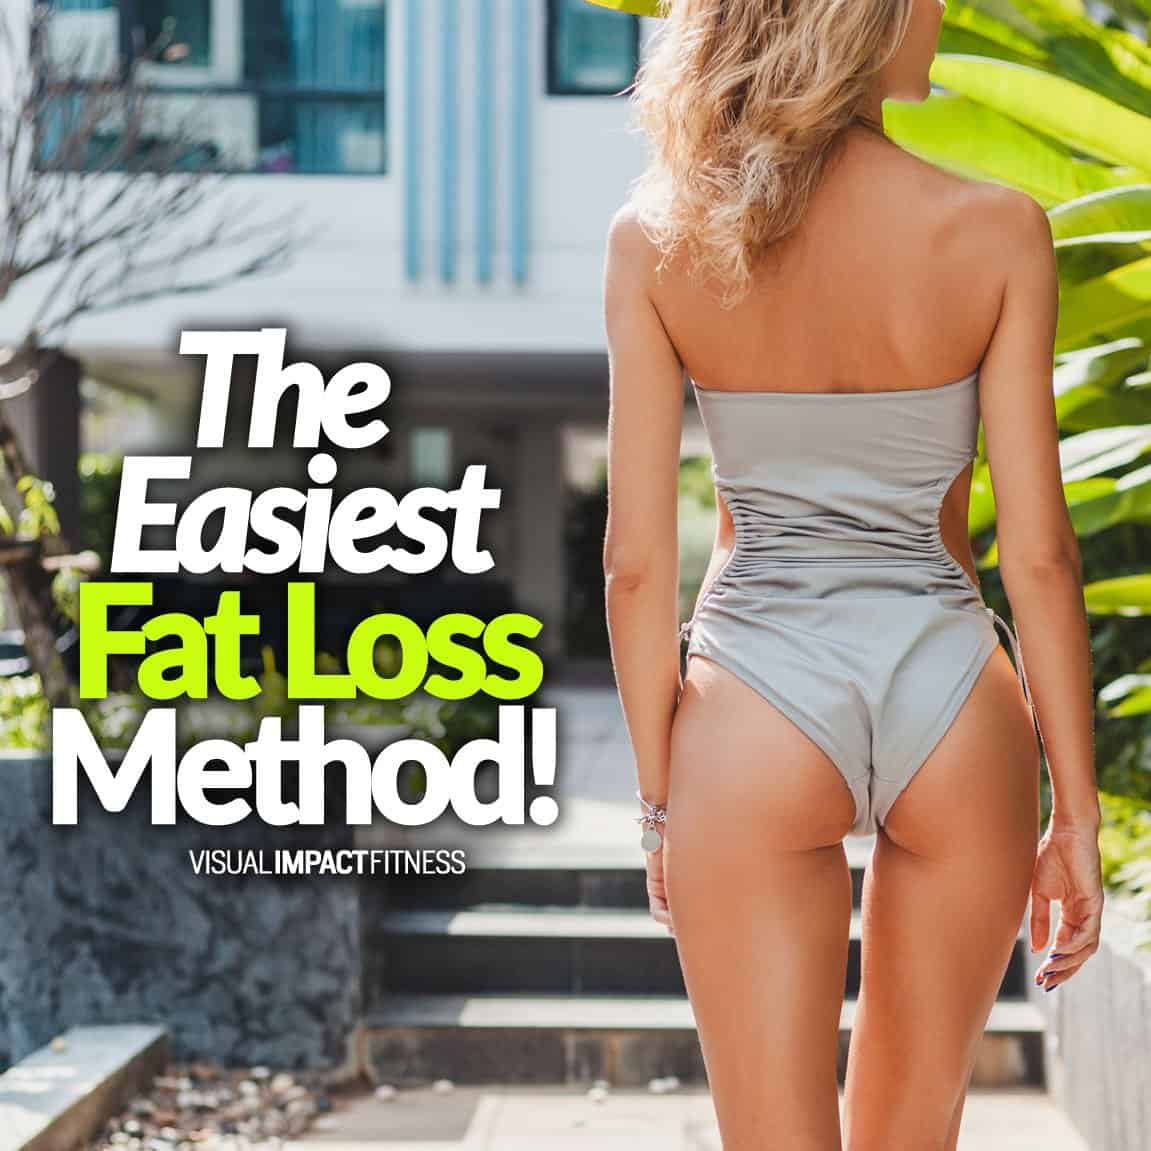 The Easiest Fat Loss Method